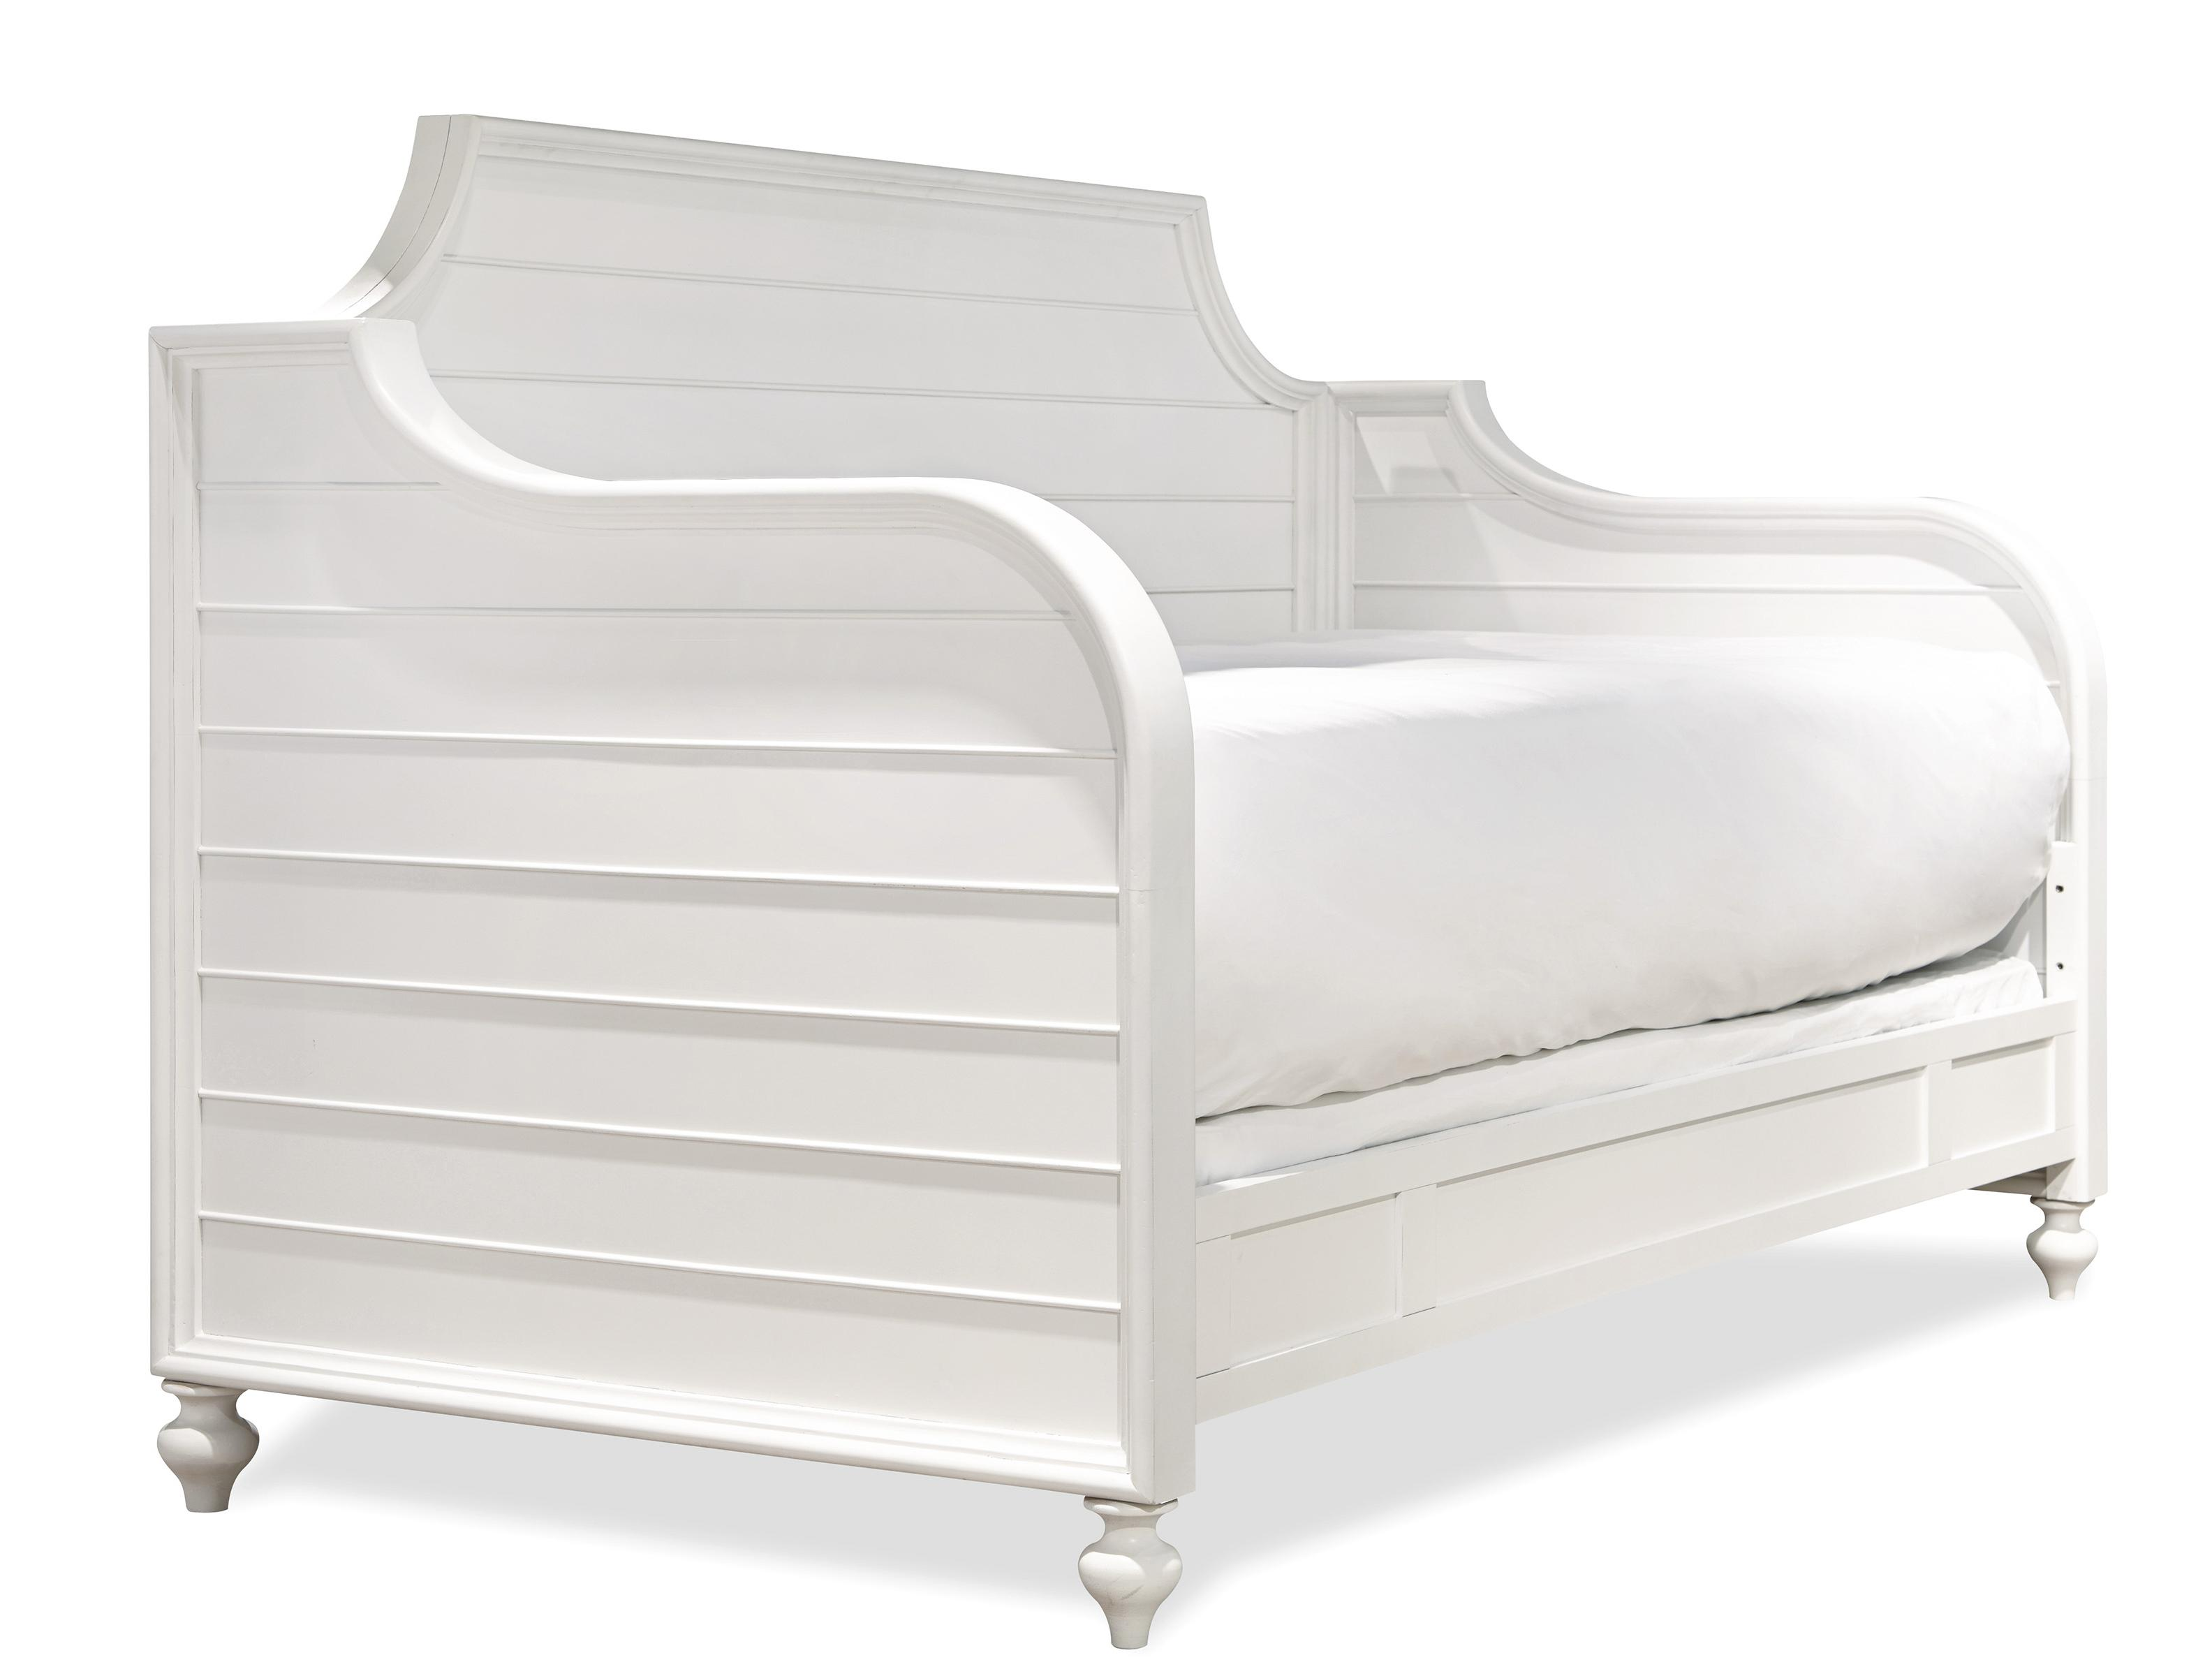 Smartstuff Black and White Daybed - Item Number: 437A039